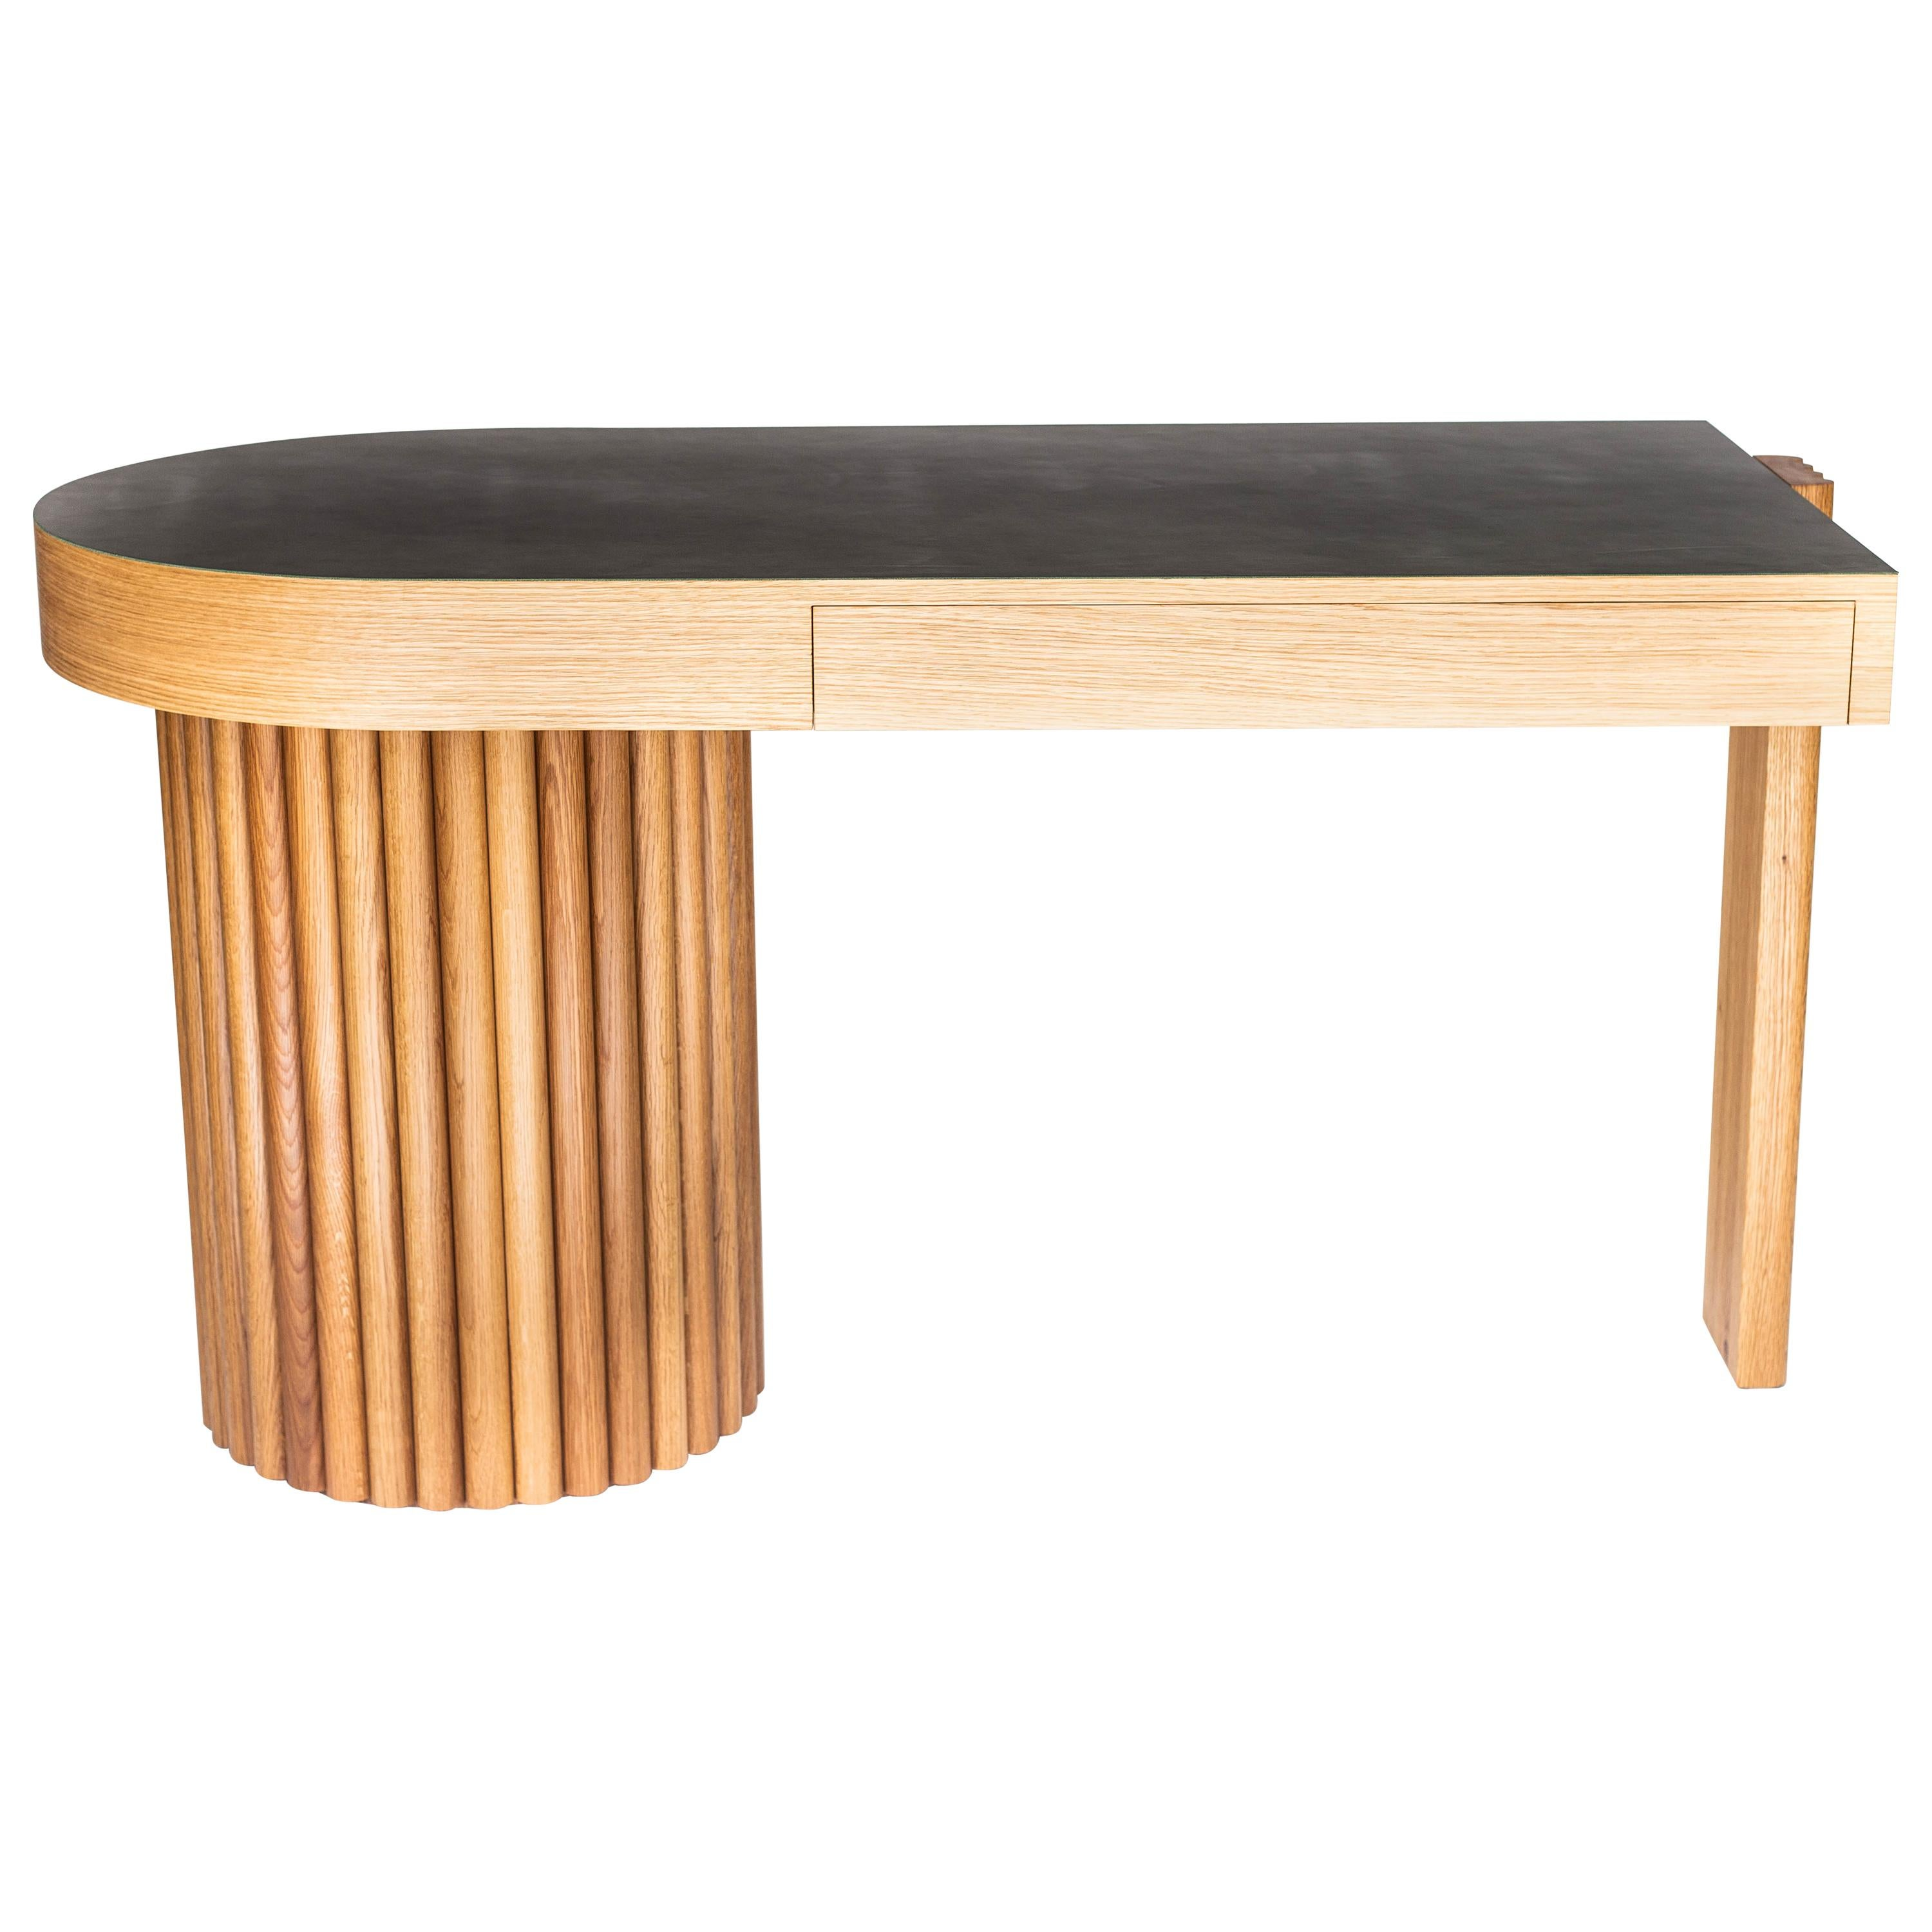 Asymmetrical Brutalist Inspired Writing Desk with Leather Top by Kate Duncan